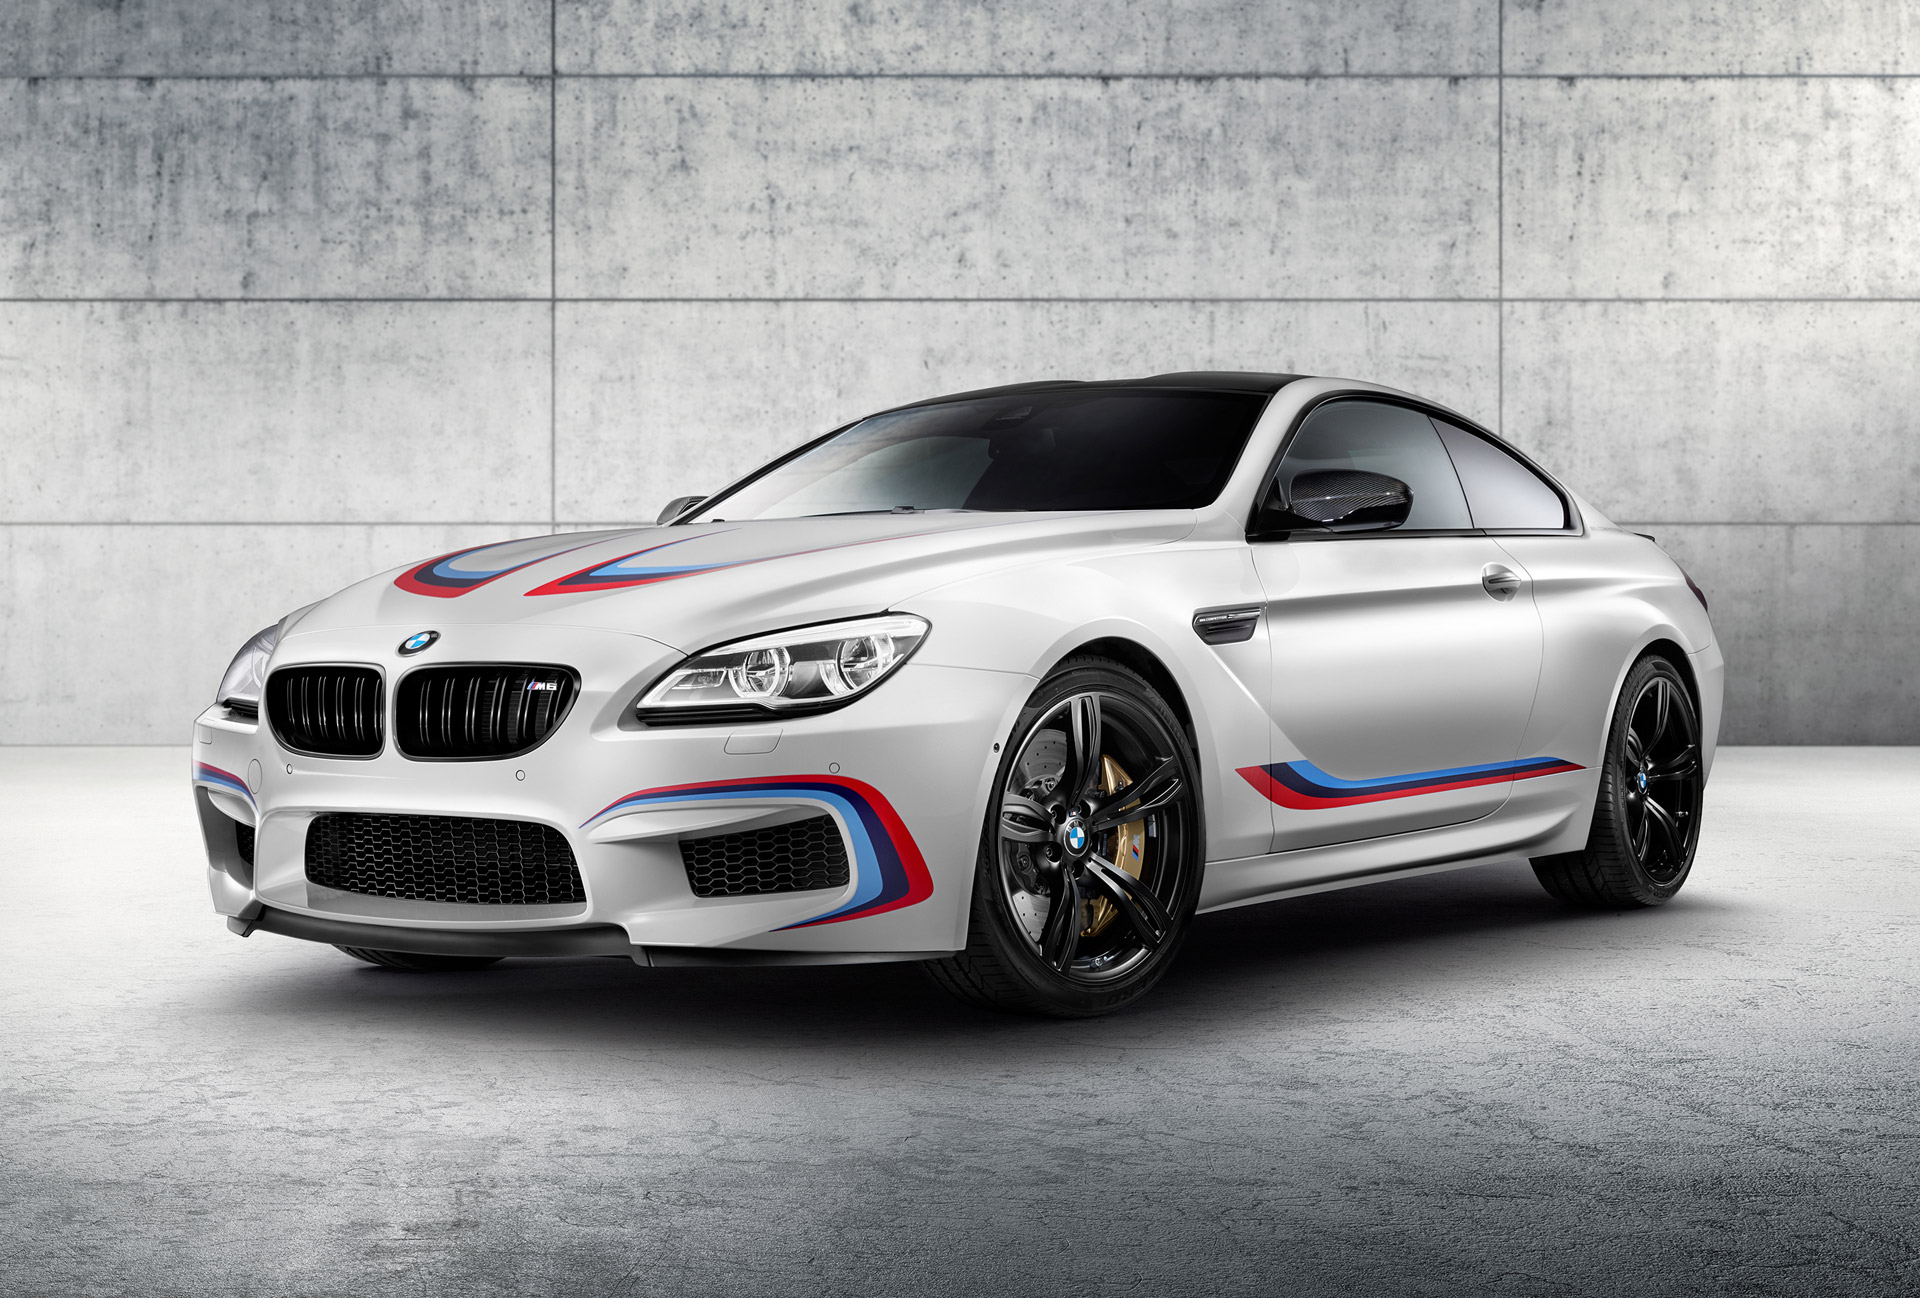 600 Horsepower Bmw M6 Competition Package Debuts At 2015 Frankfurt